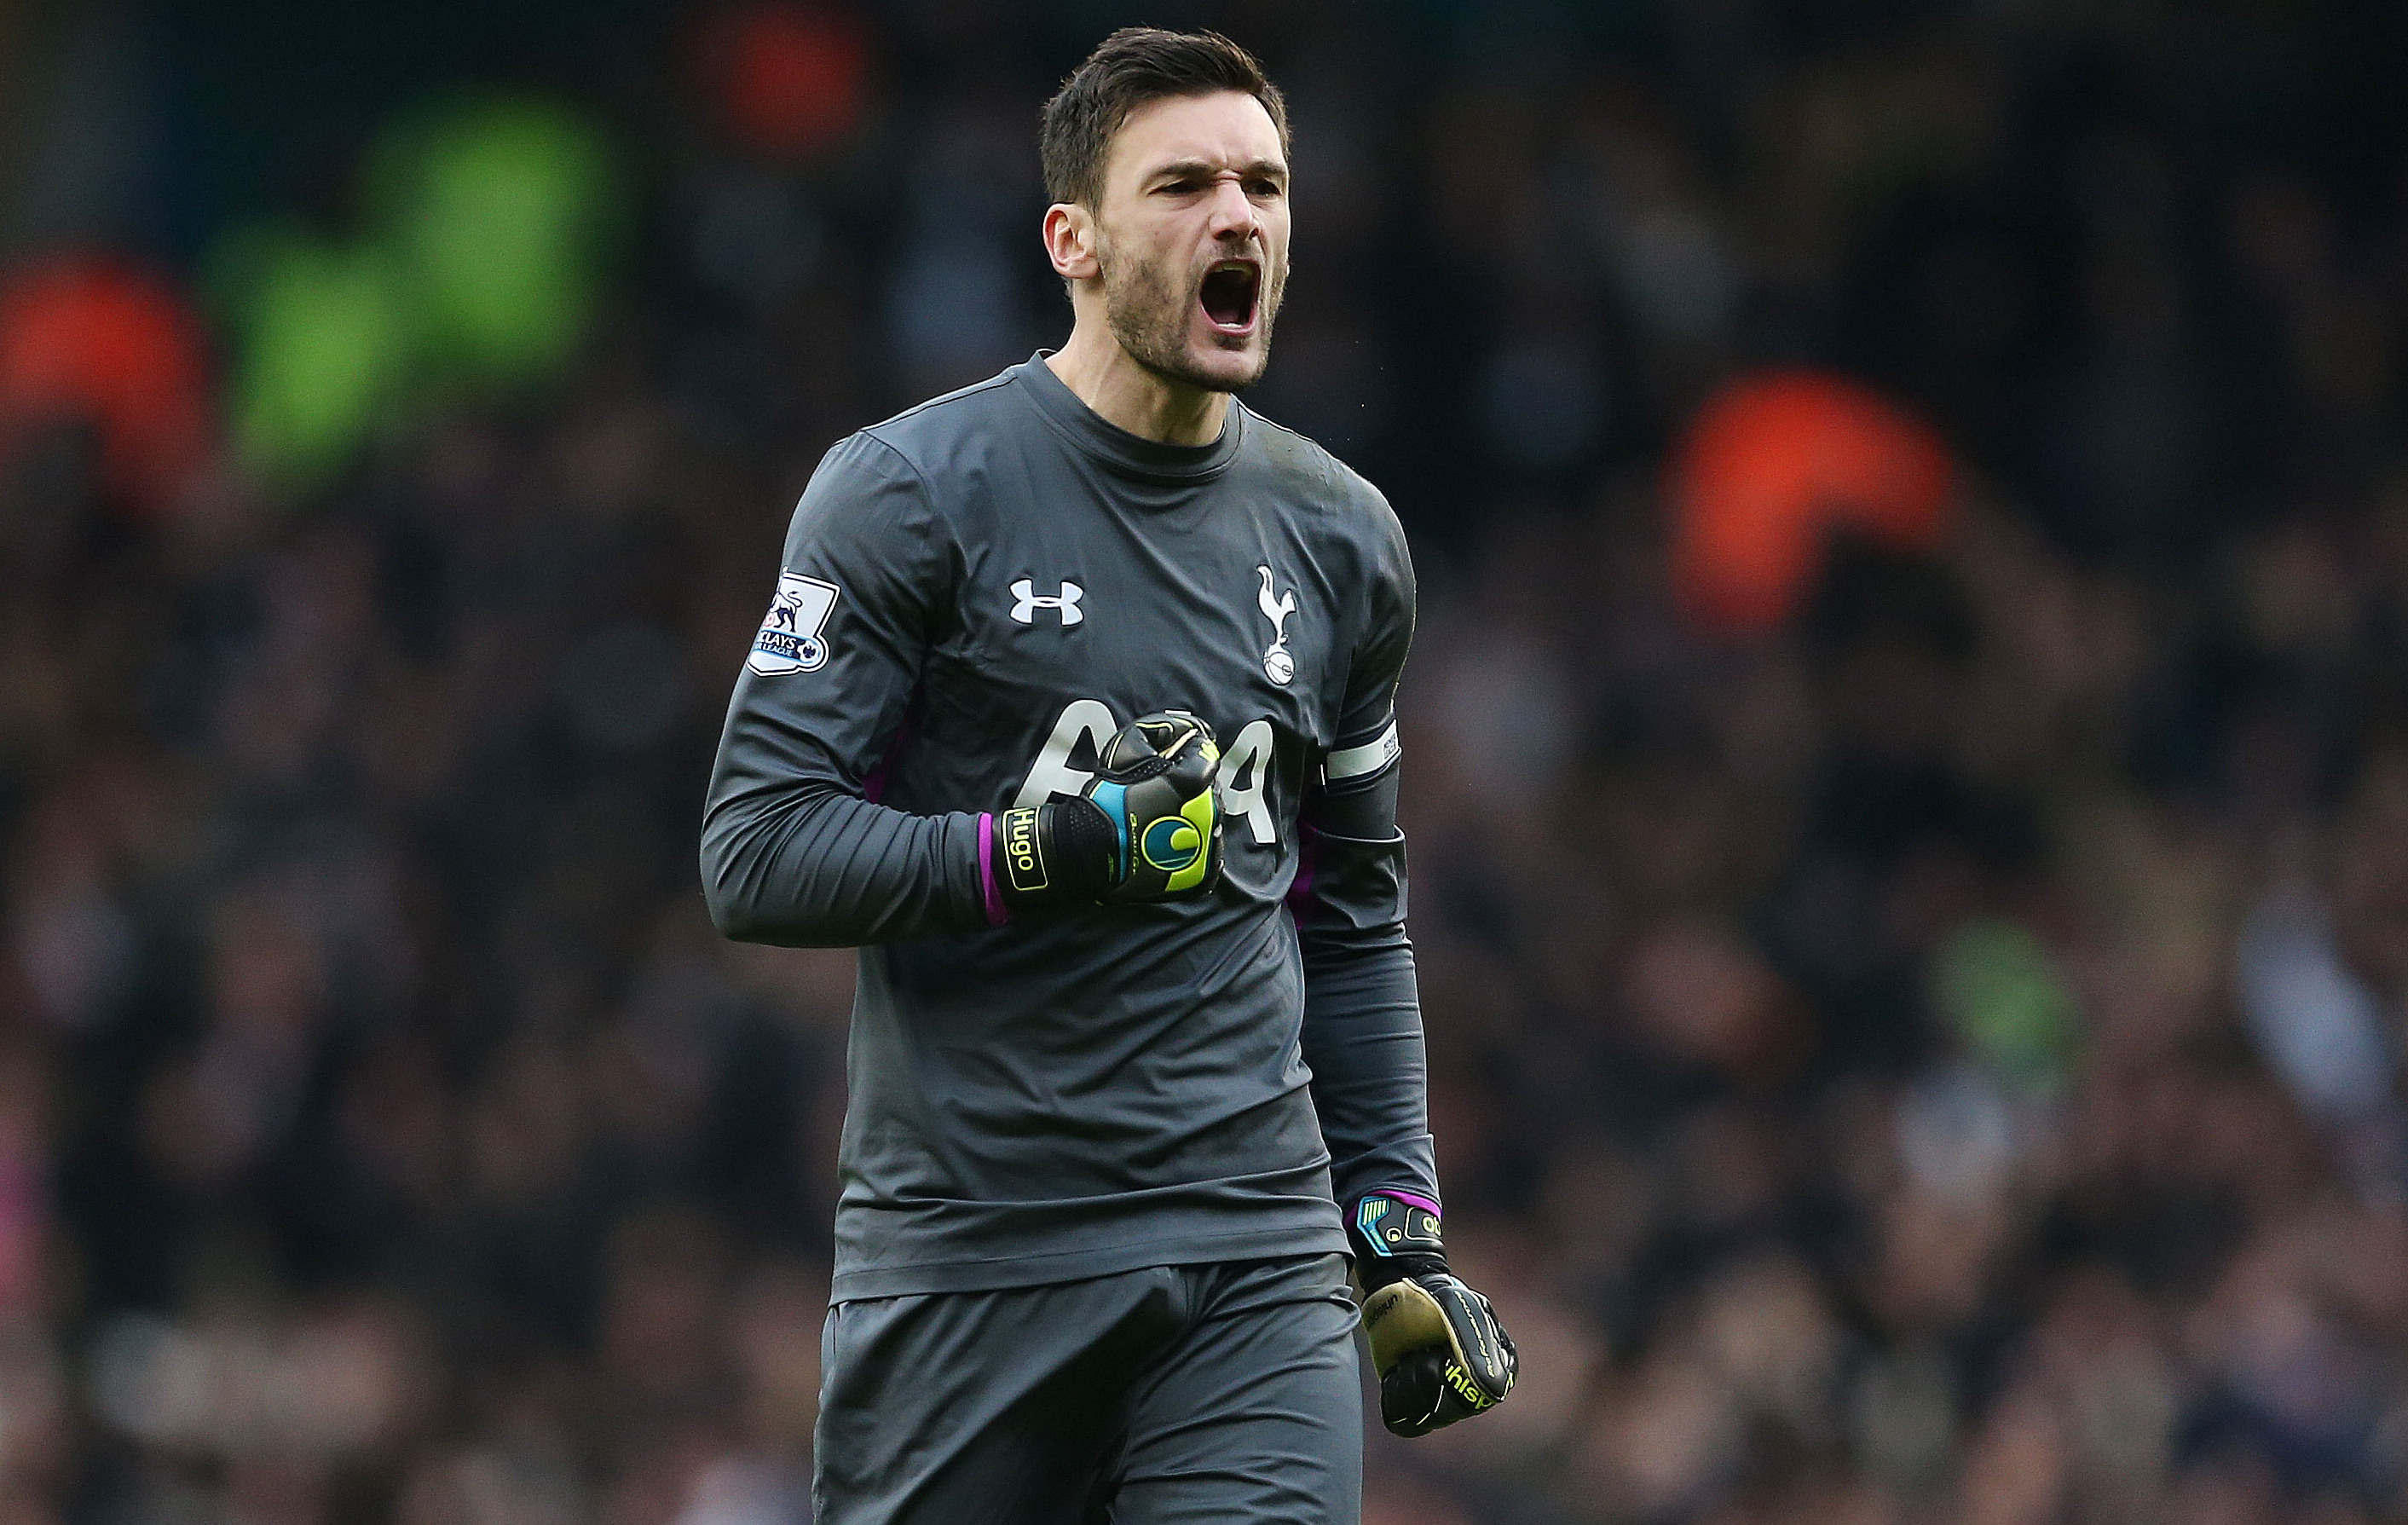 lloris gardien le plus cher de l histoire du foot. Black Bedroom Furniture Sets. Home Design Ideas